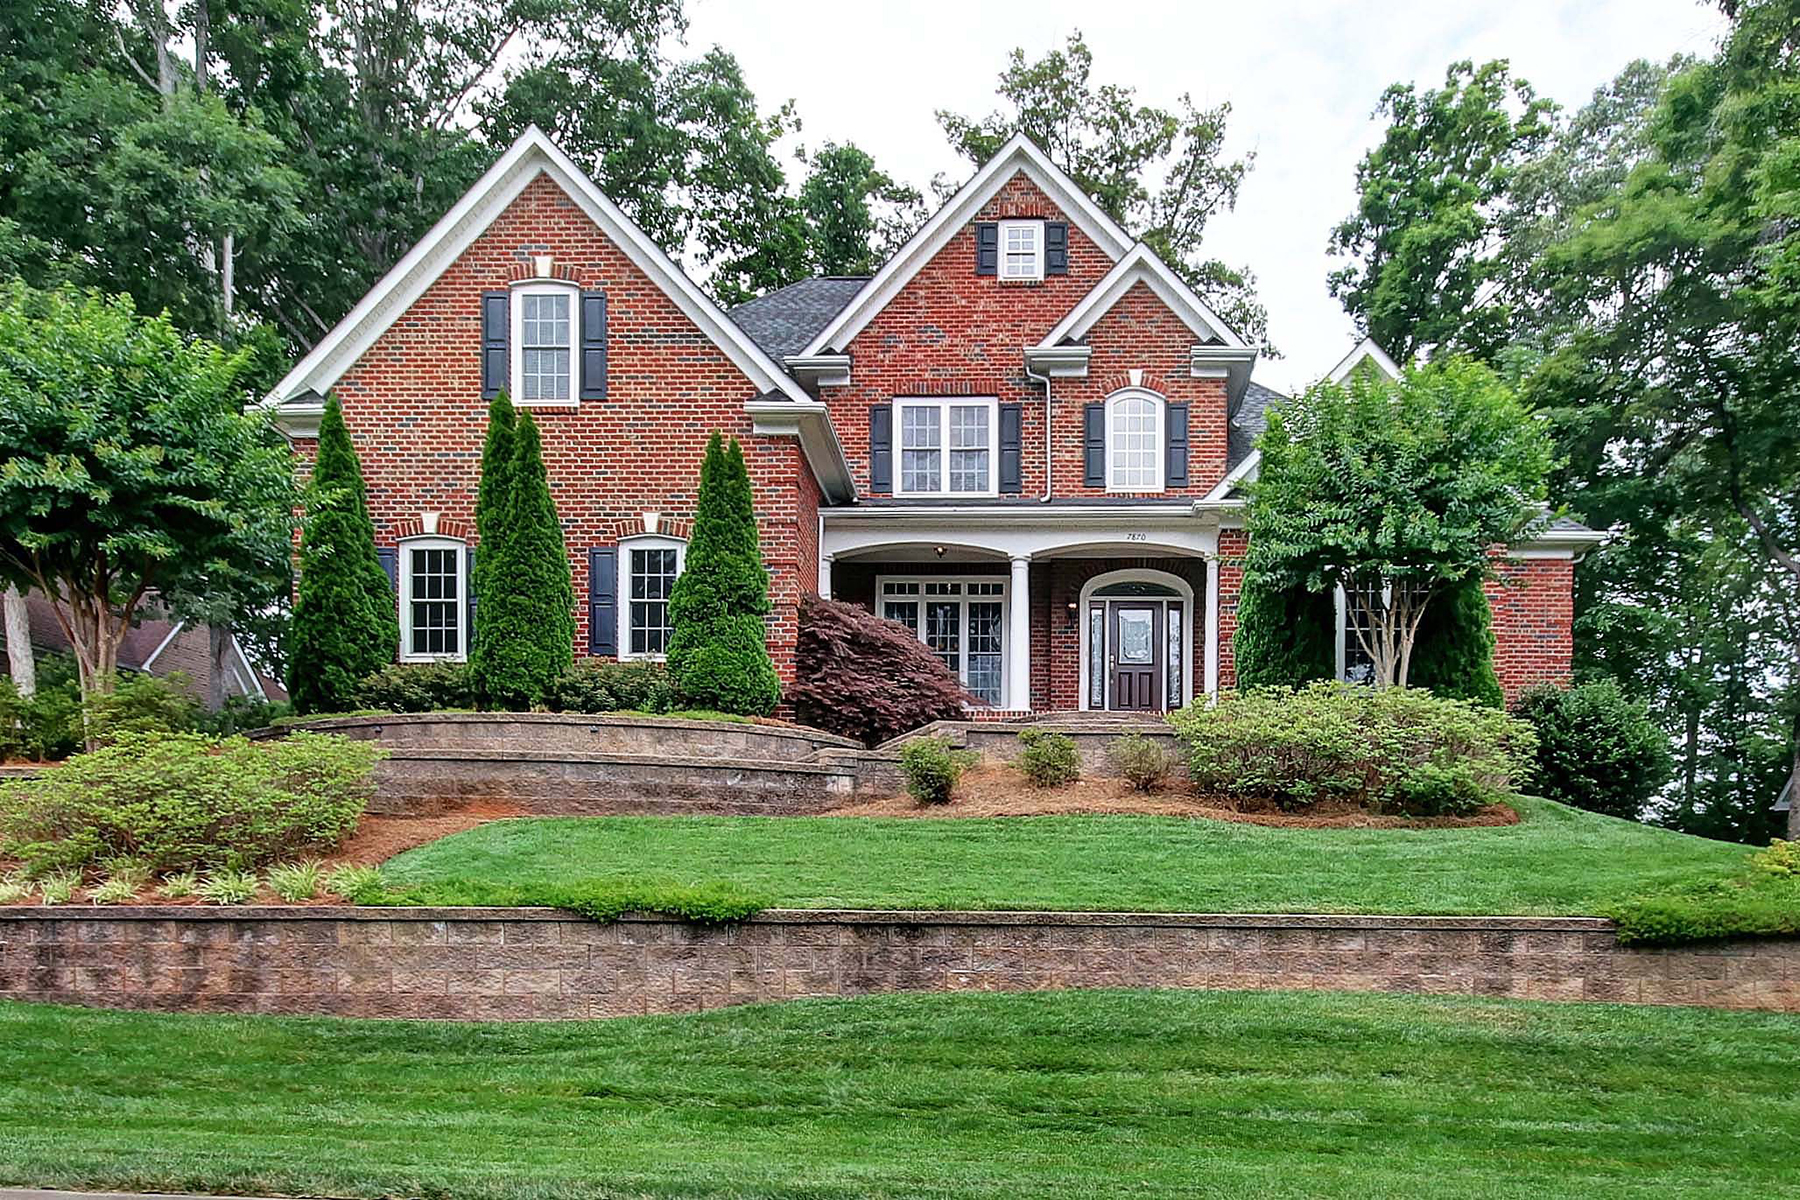 Single Family Home for Sale at TREETOPS AT COWANS FORD 7870 Oak Haven Ln, Stanley, North Carolina 28164 United States